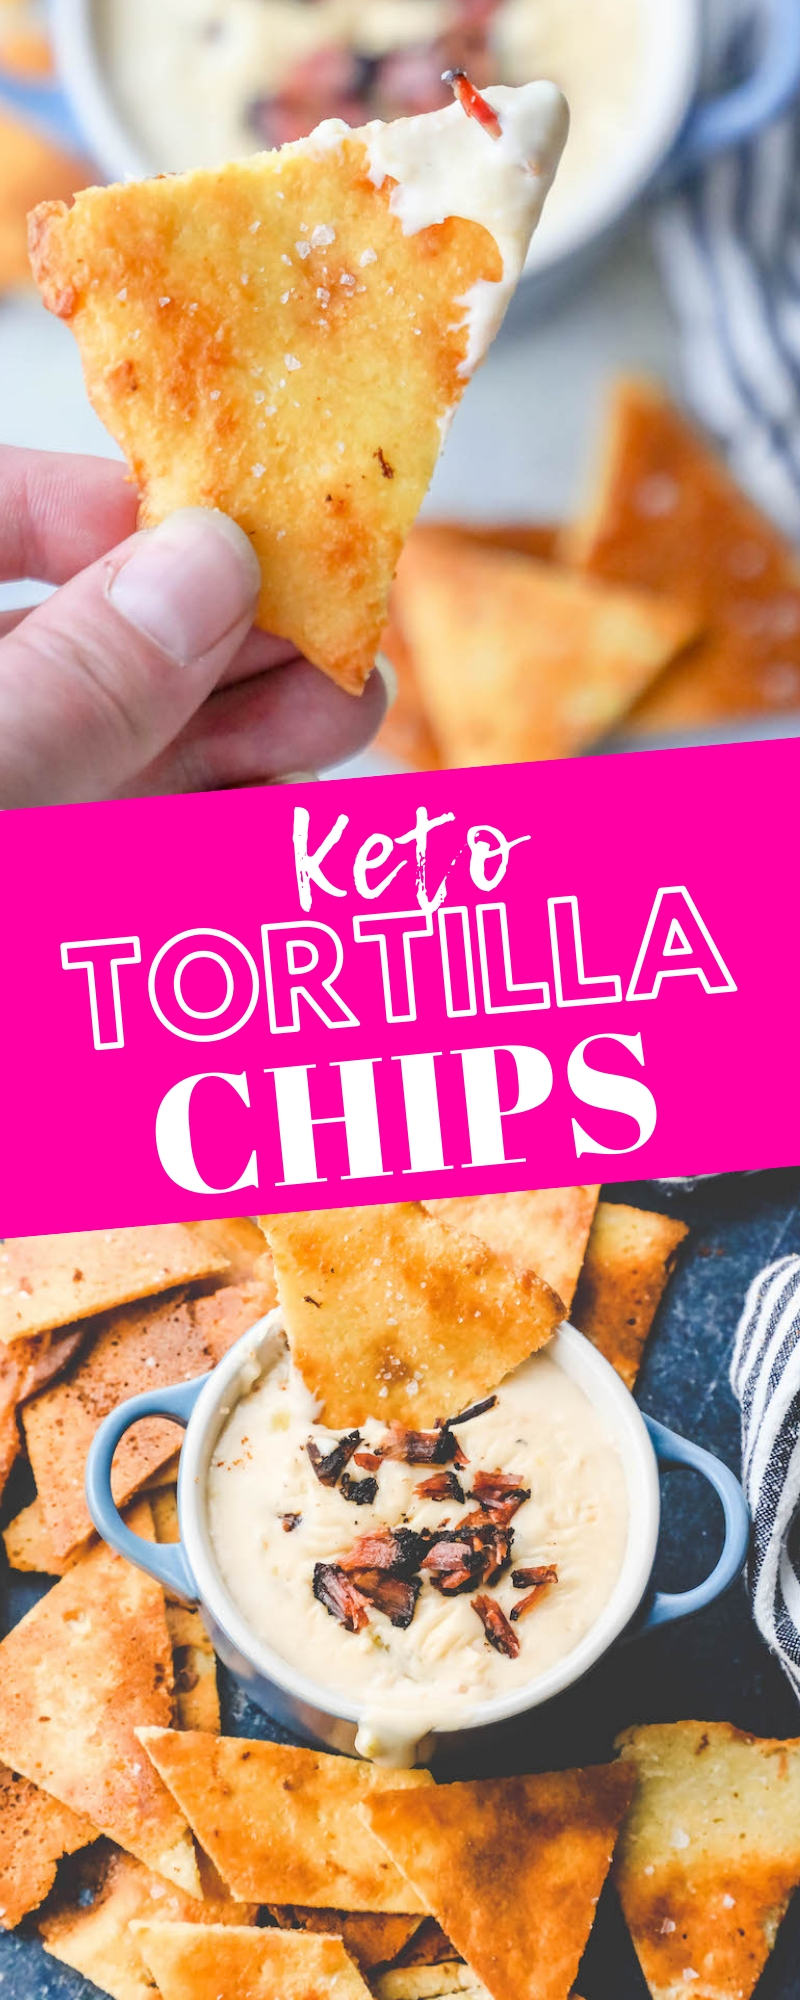 Picture of keto tortilla chips on a plate with dip